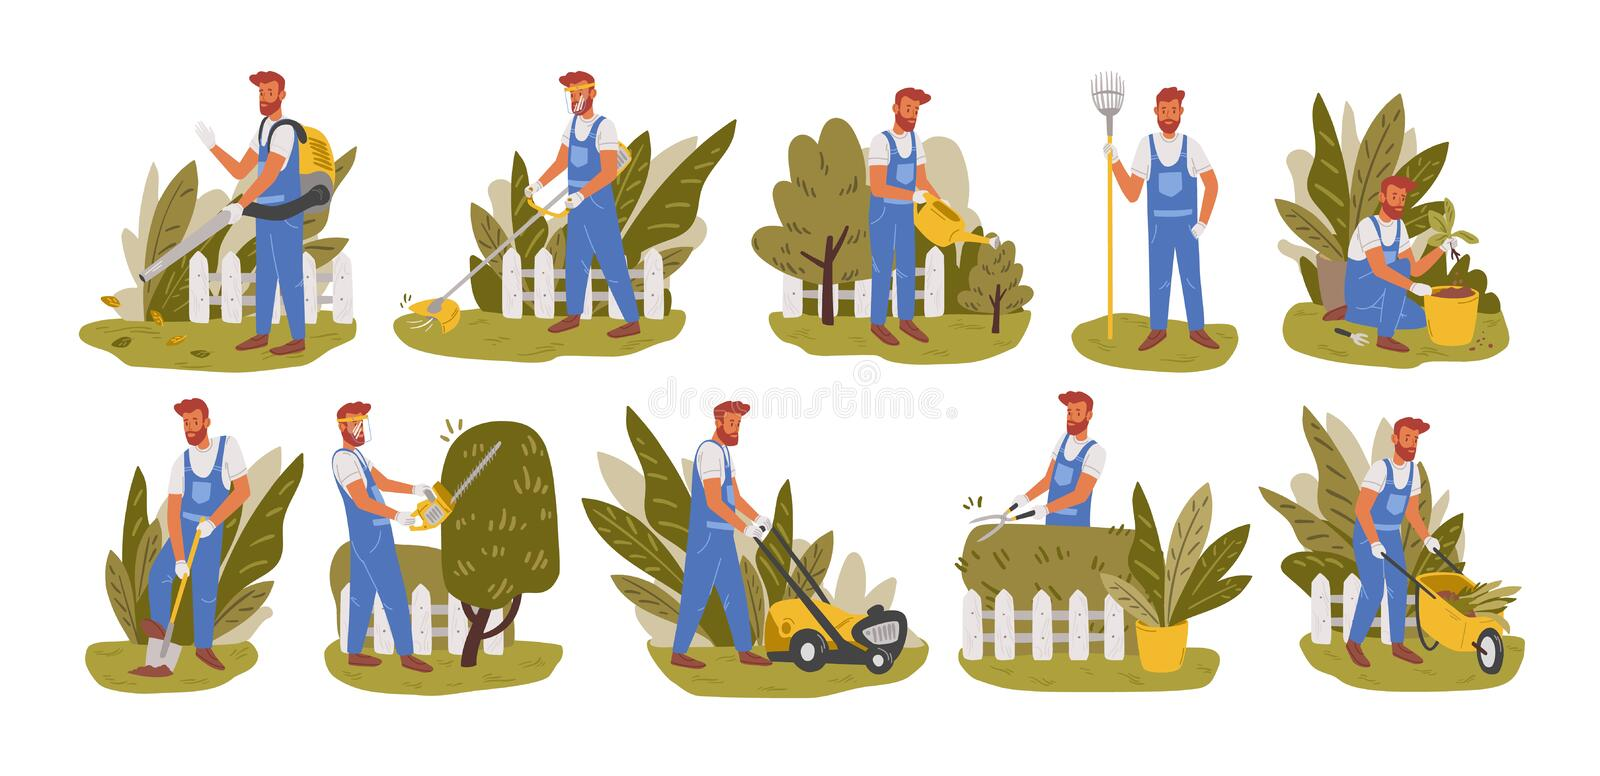 Gardener working flat vector illustrations set. Male handyman character mowing grass, trimming trees and bushes isolated vector illustration